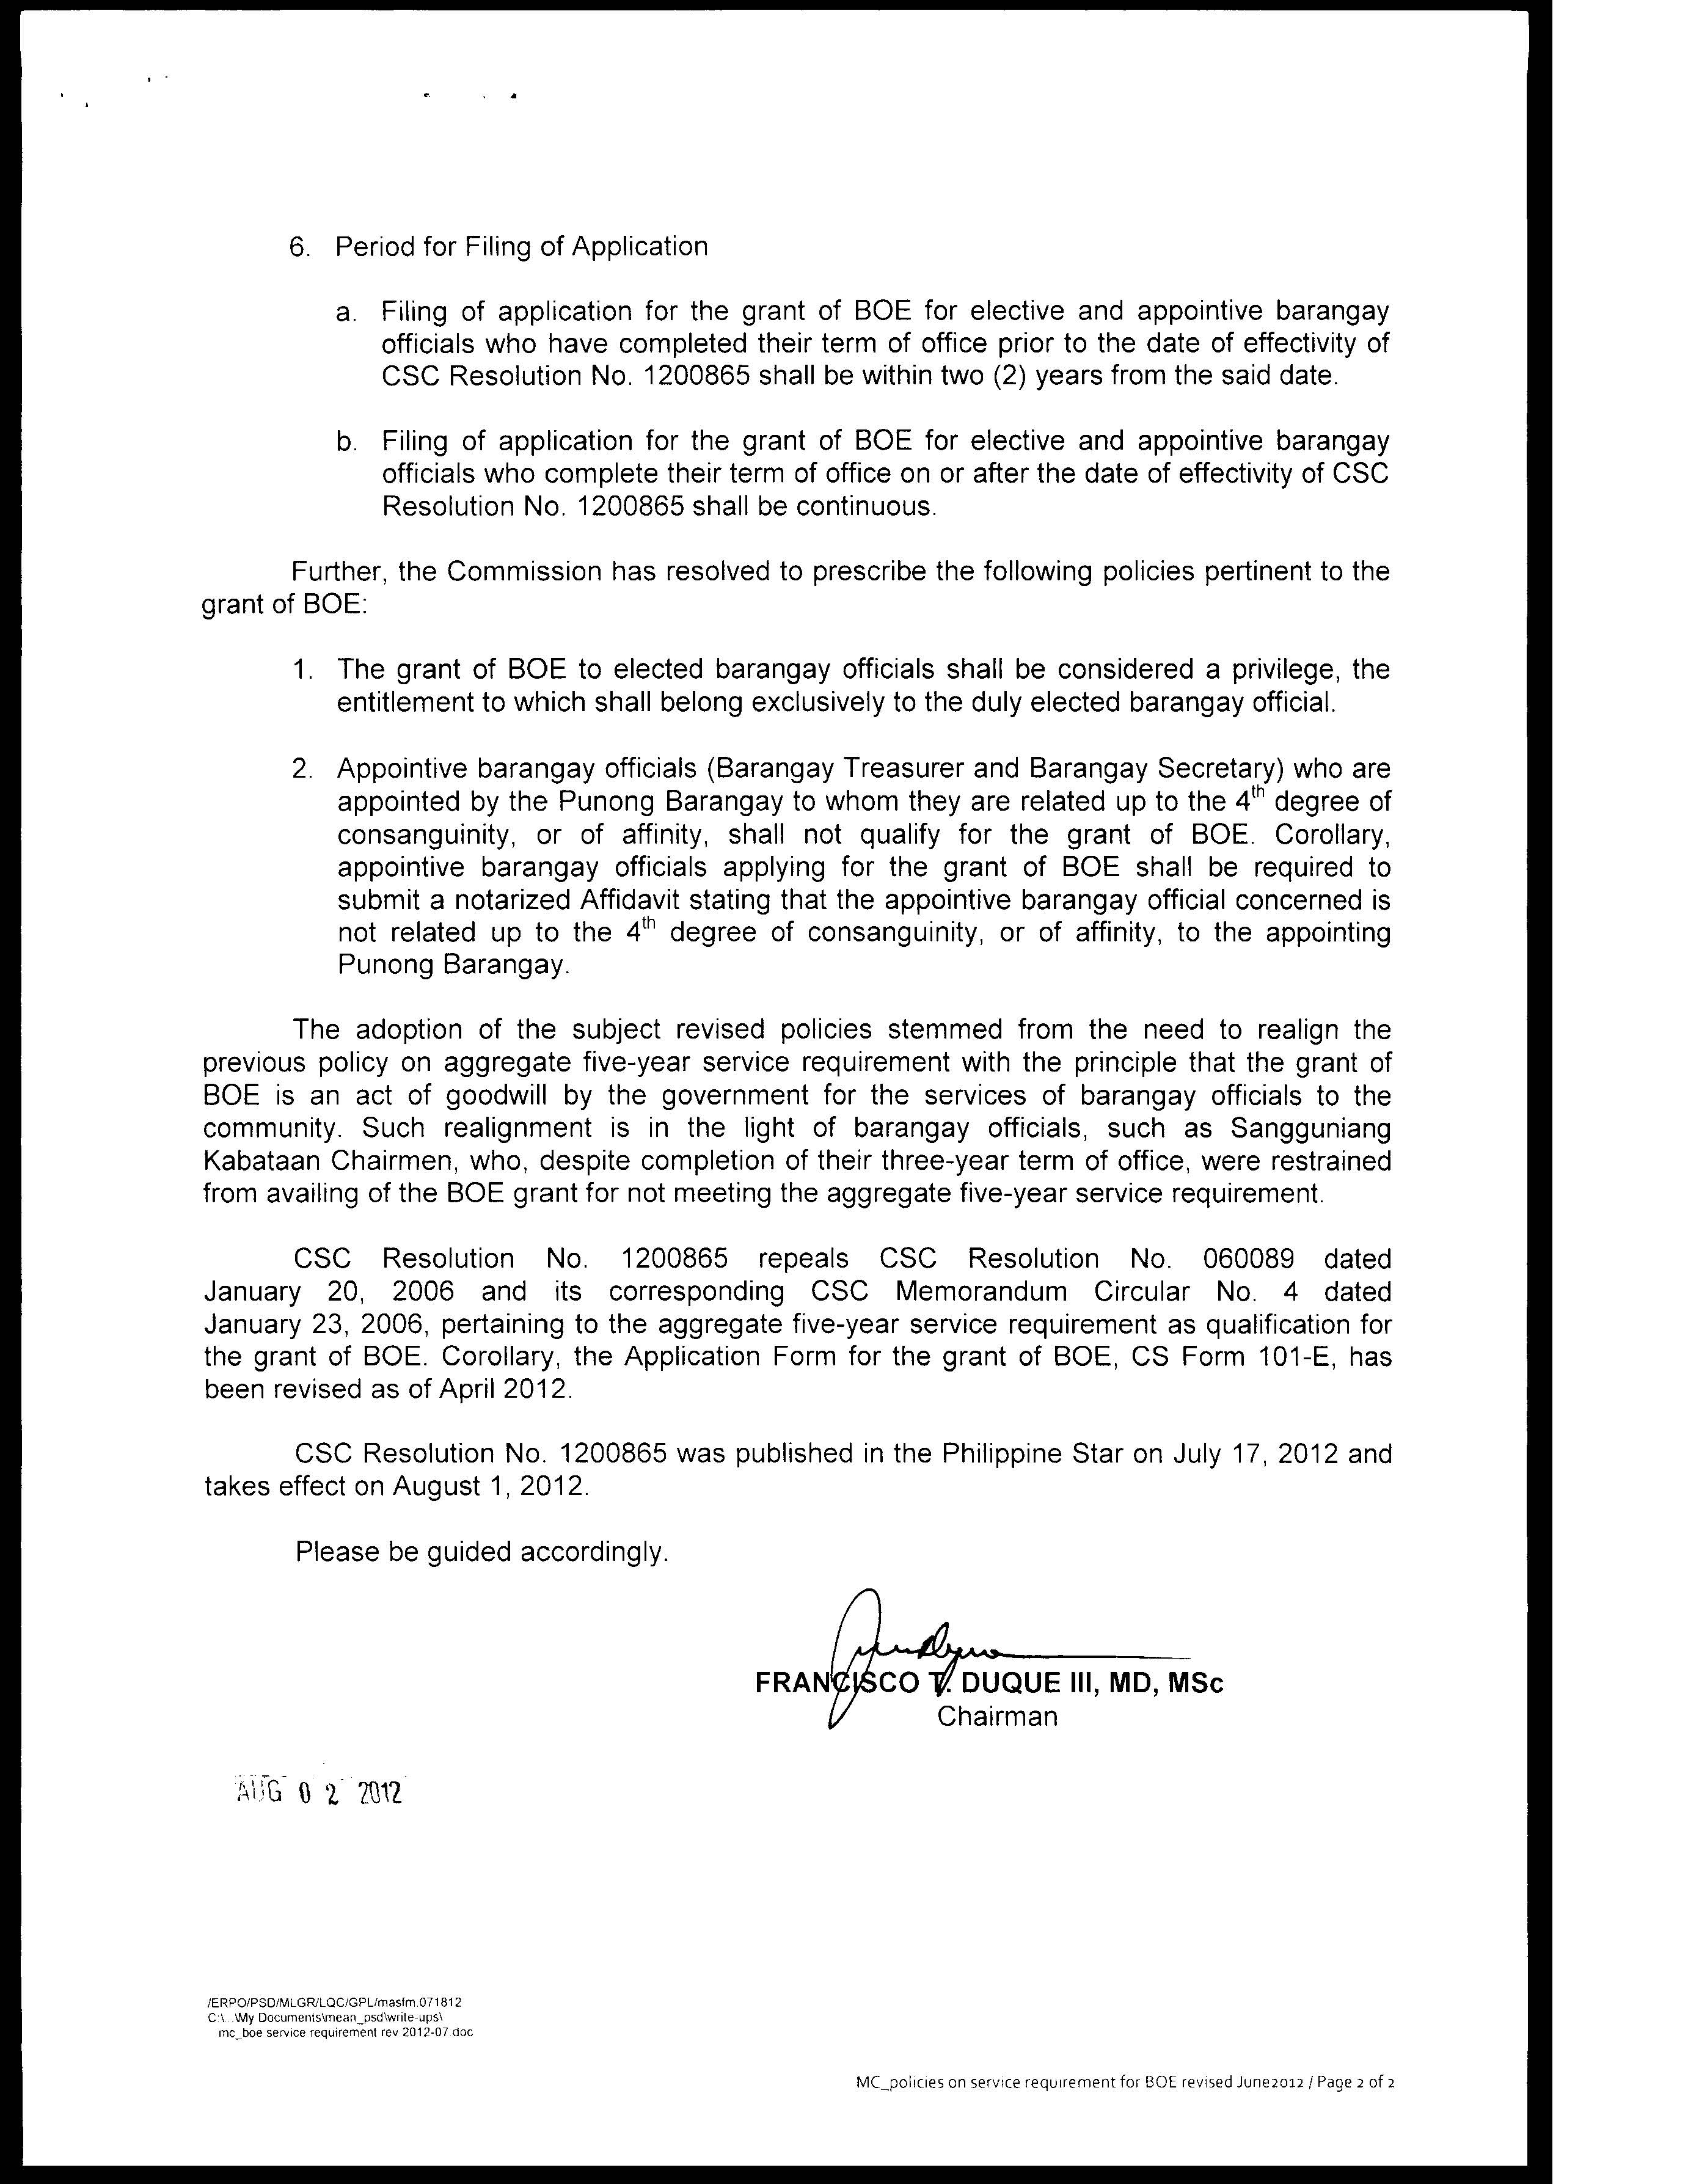 CSC MC 13 s. 2012 (Policies on Service Requirement for Grant of ...